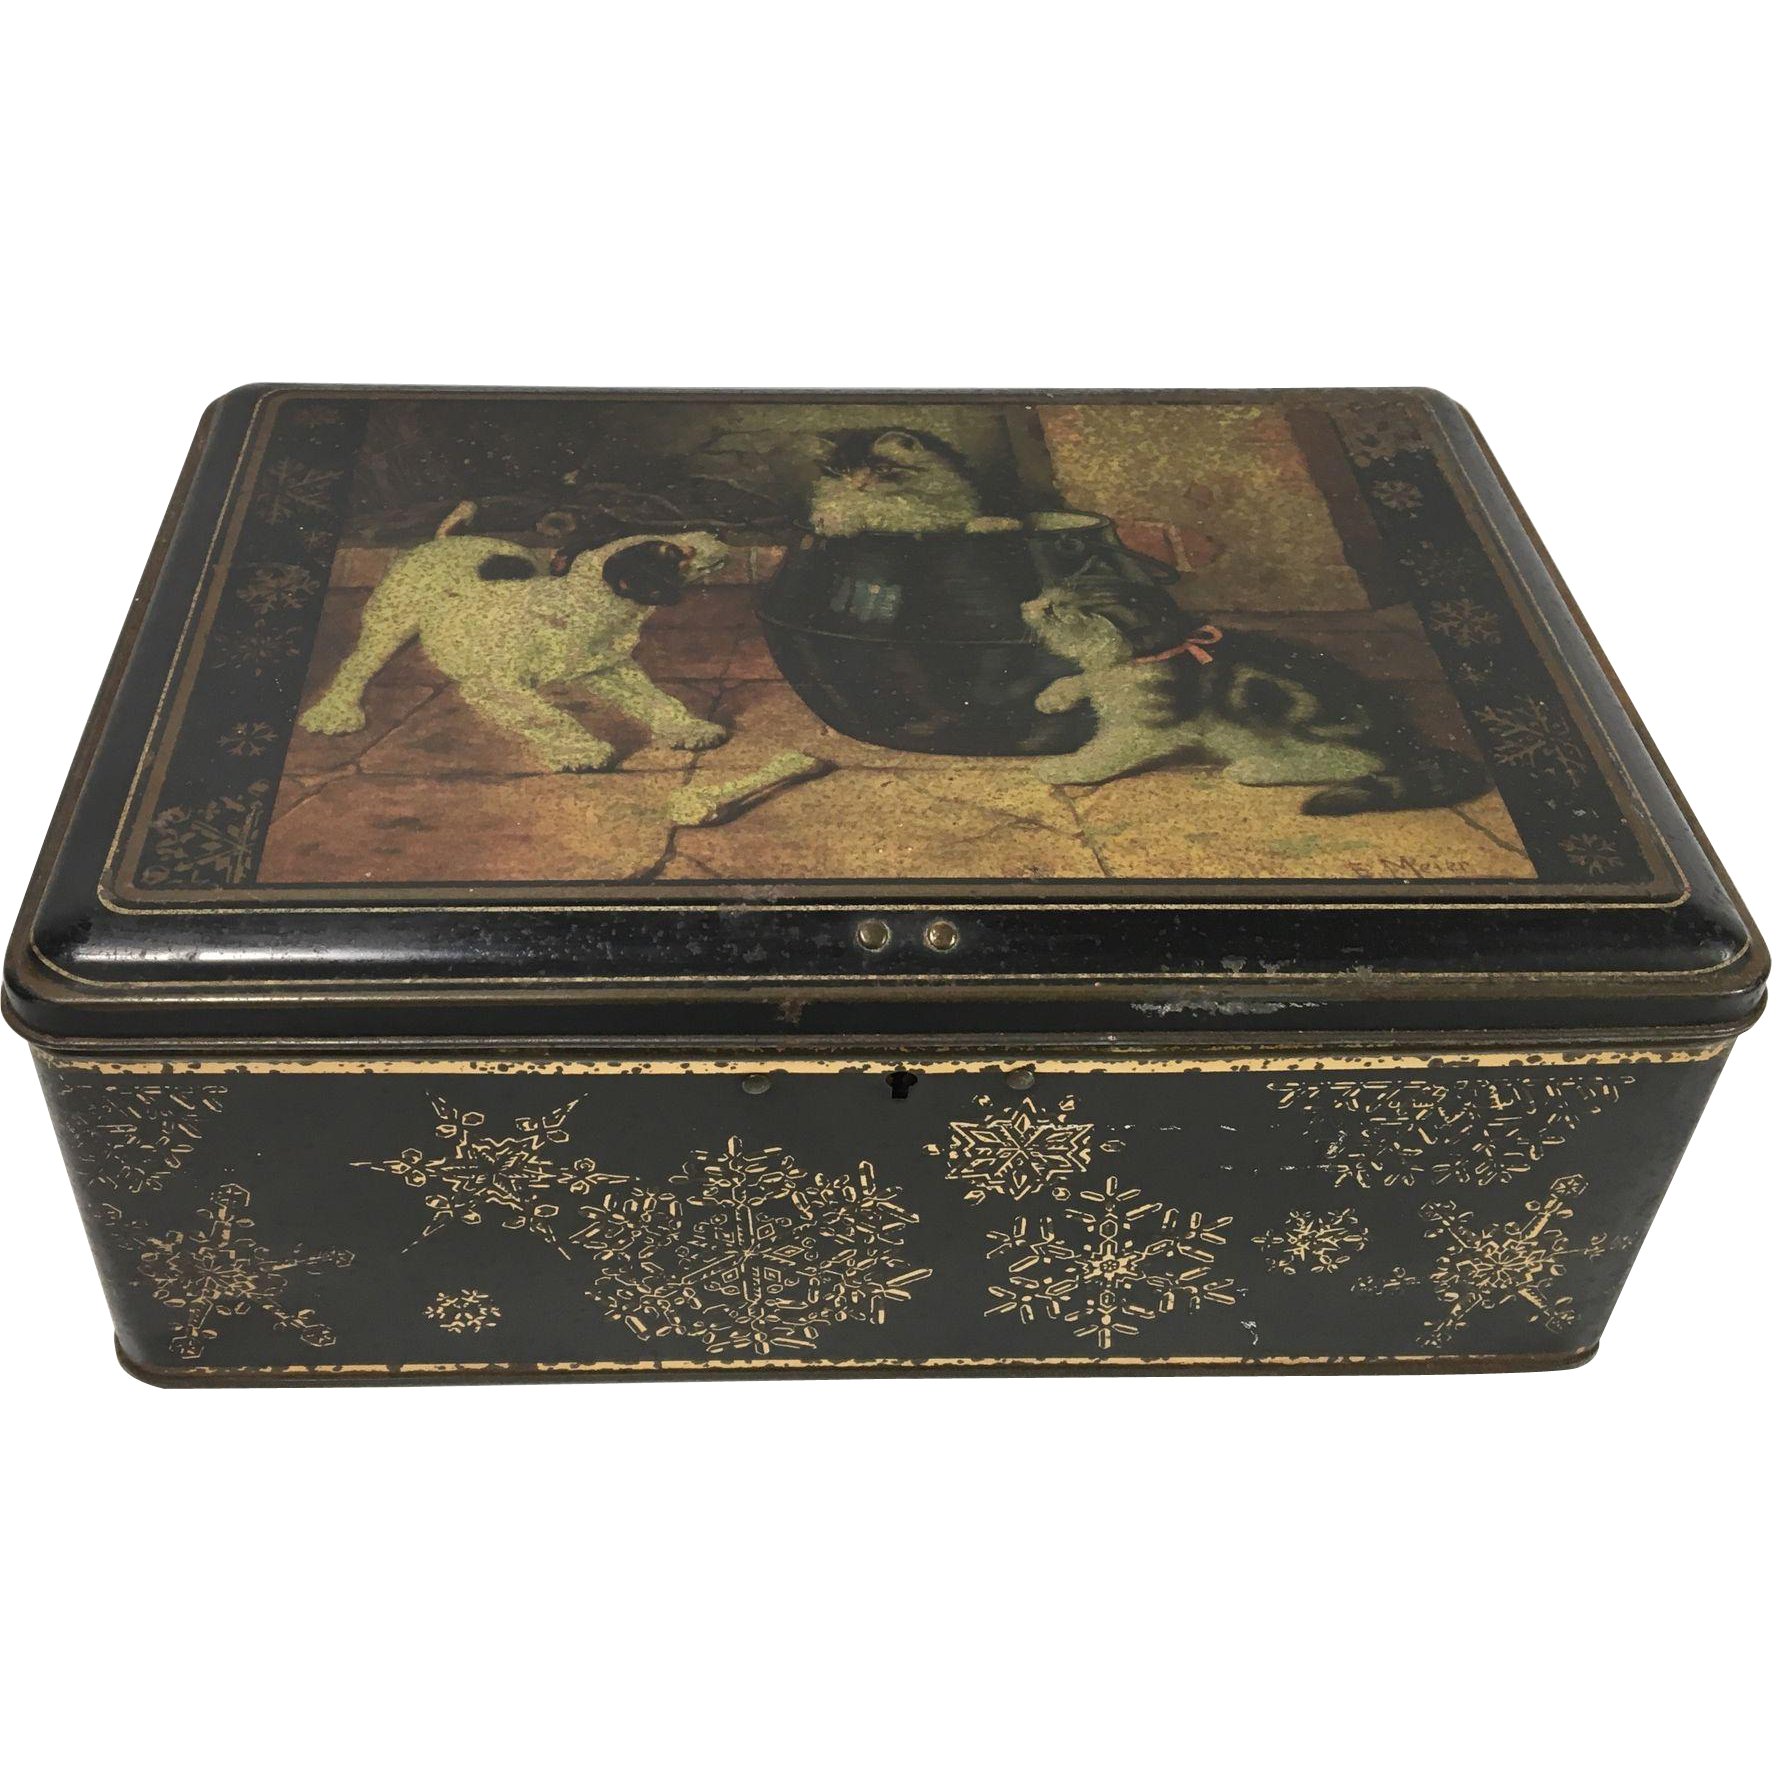 C. 1900 Art Nouveau Tin Biscuit Box, Painting of Puppy & Kittens by E. Meier